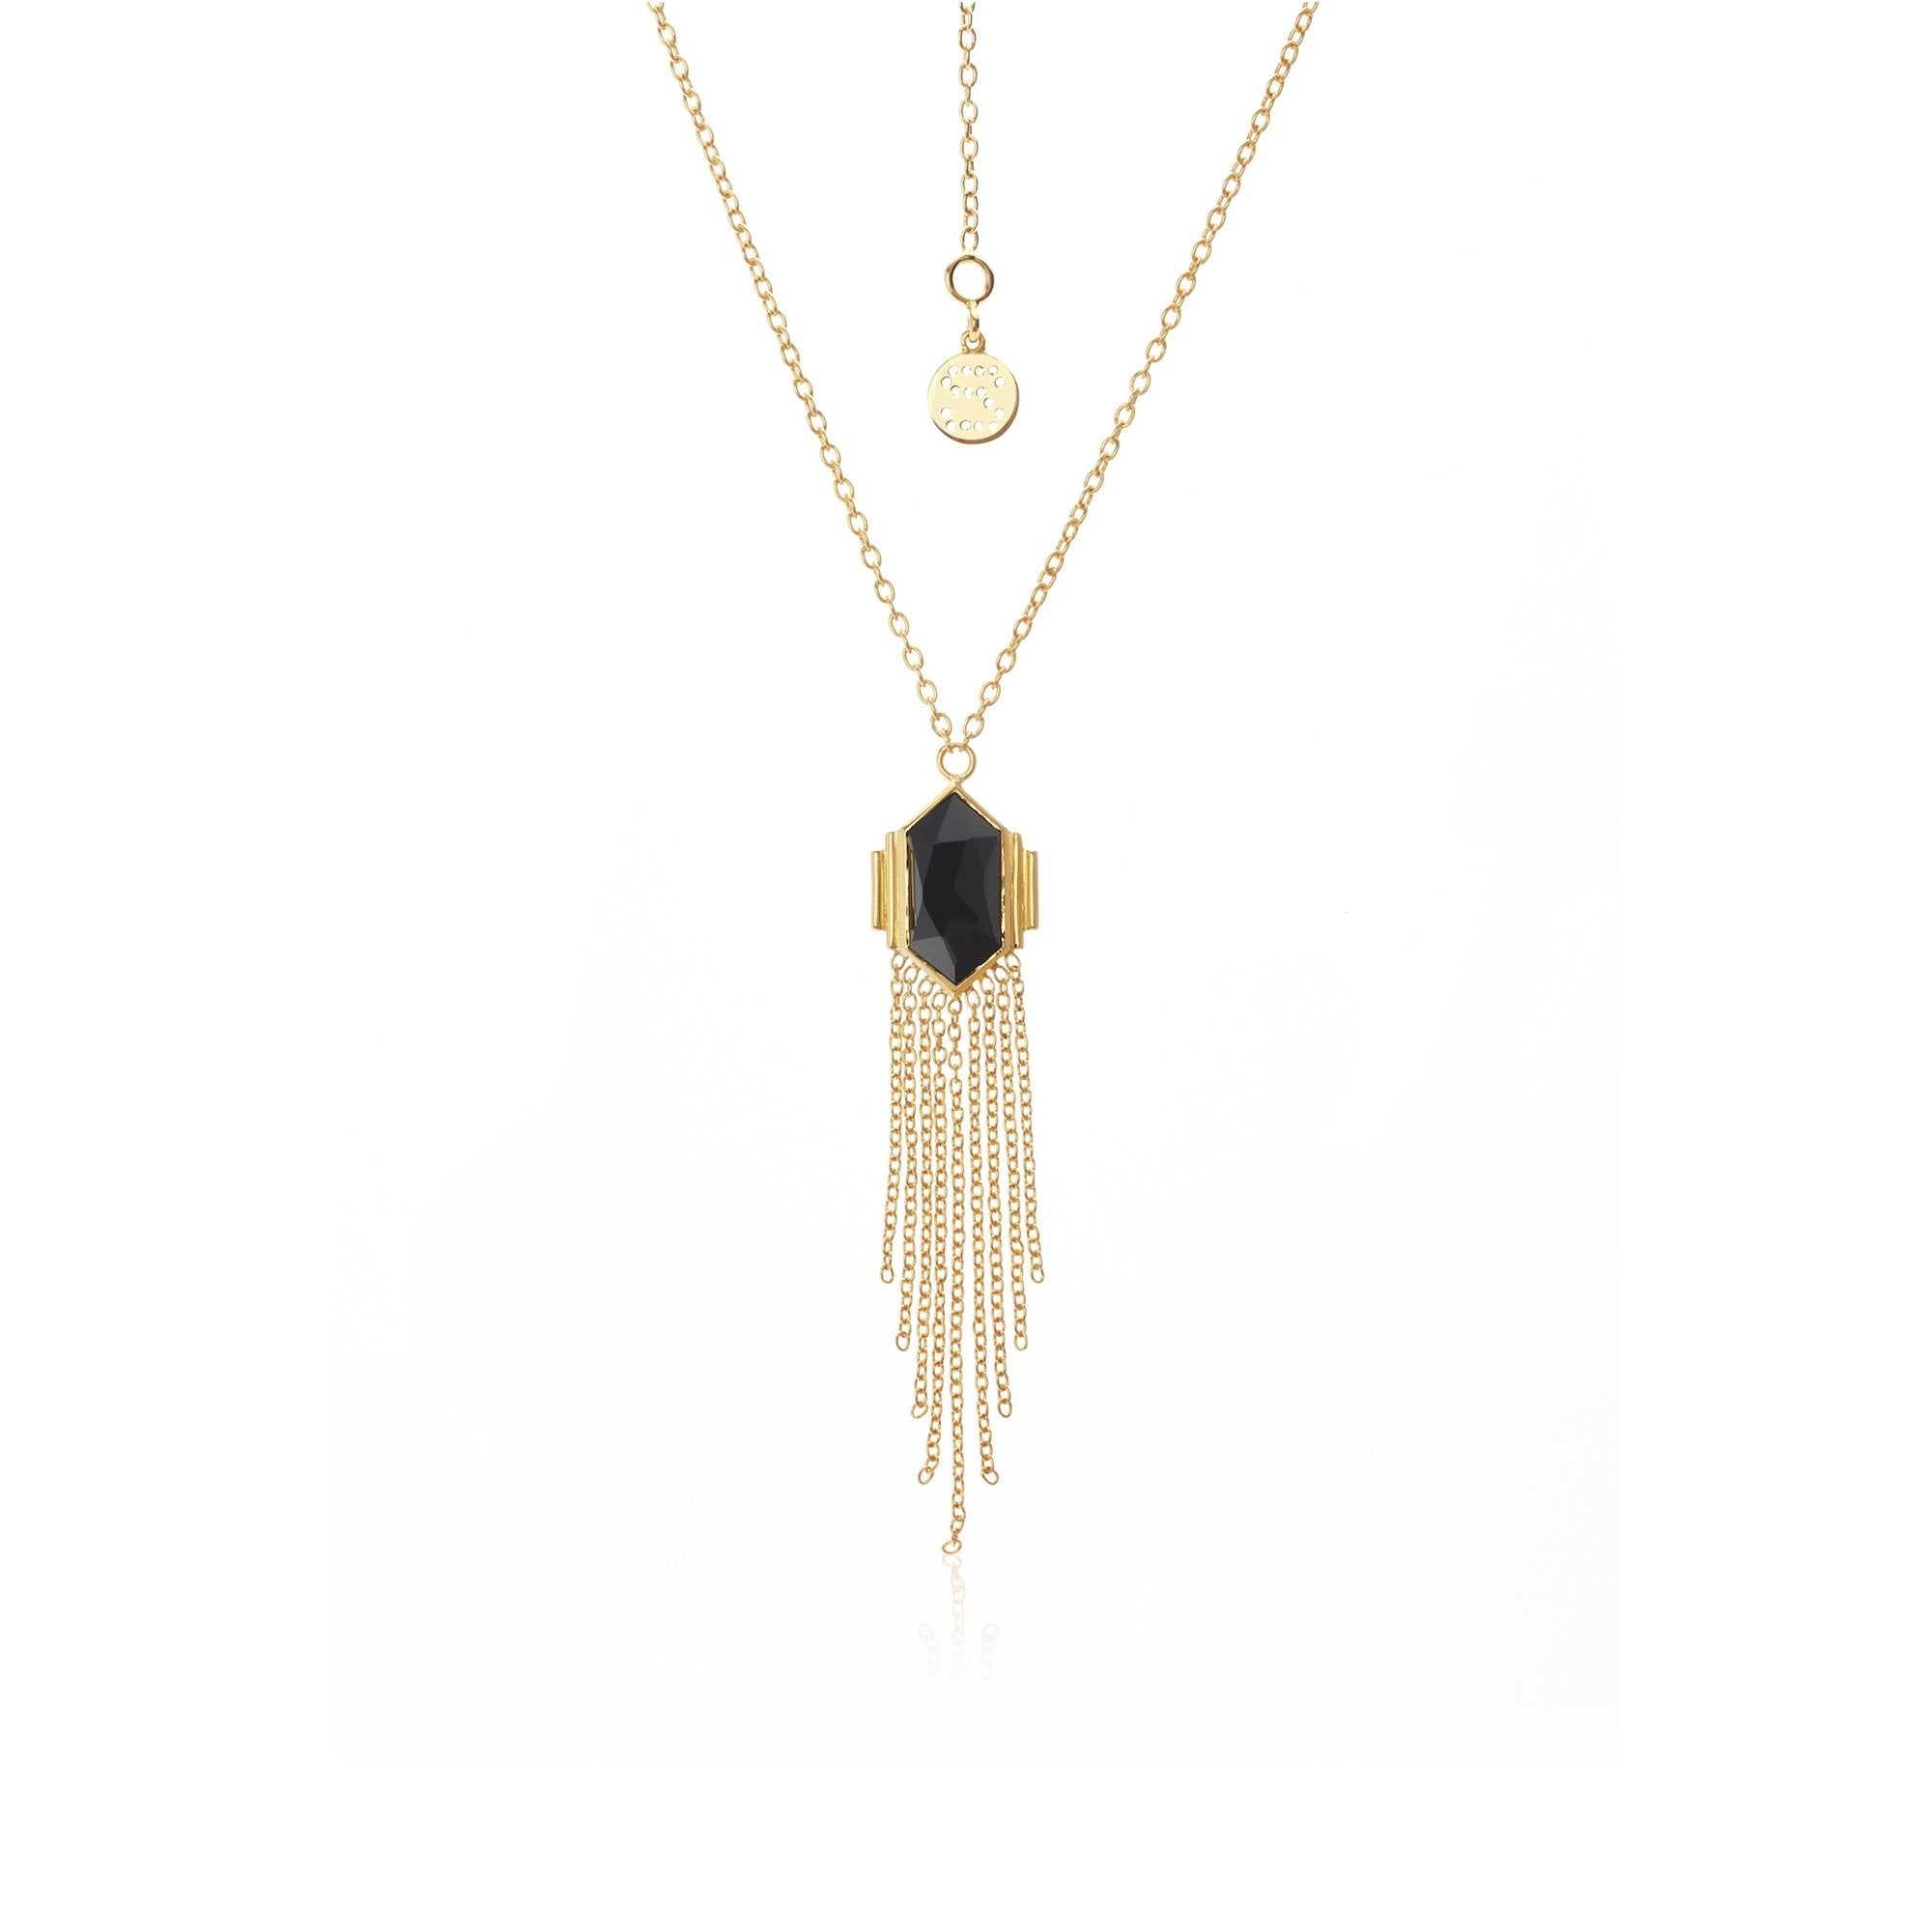 Silk & Steel Glamour Black Spinel + Gold Necklace